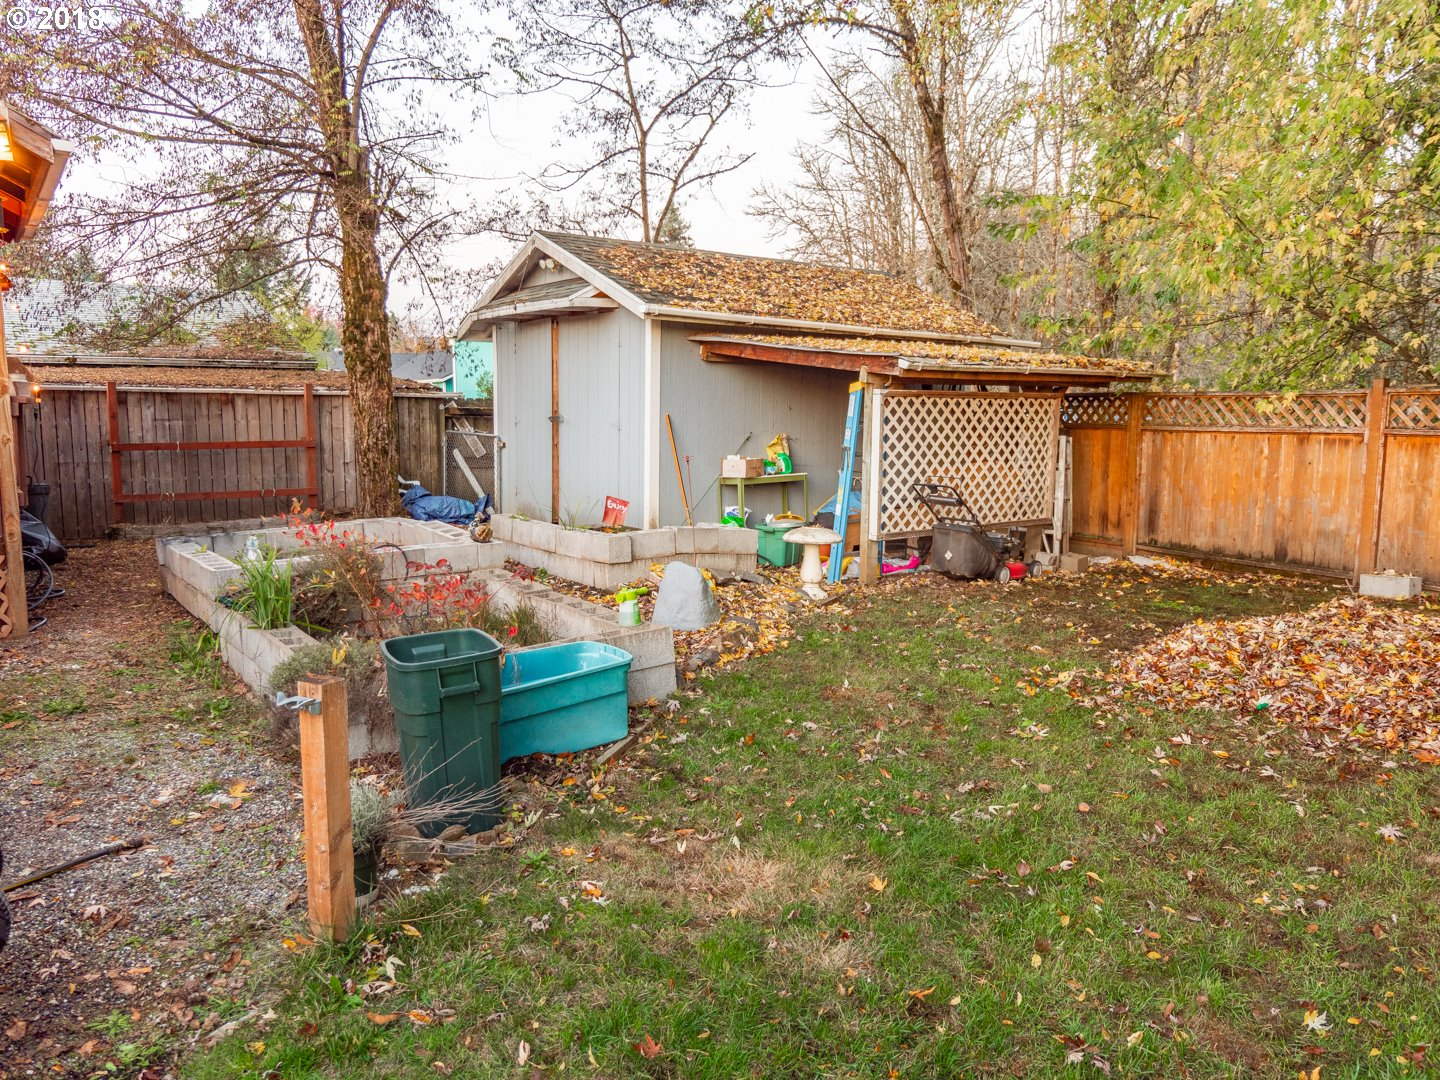 1013 23RD AVE Sweet Home, OR 97386 - MLS #: 18642761